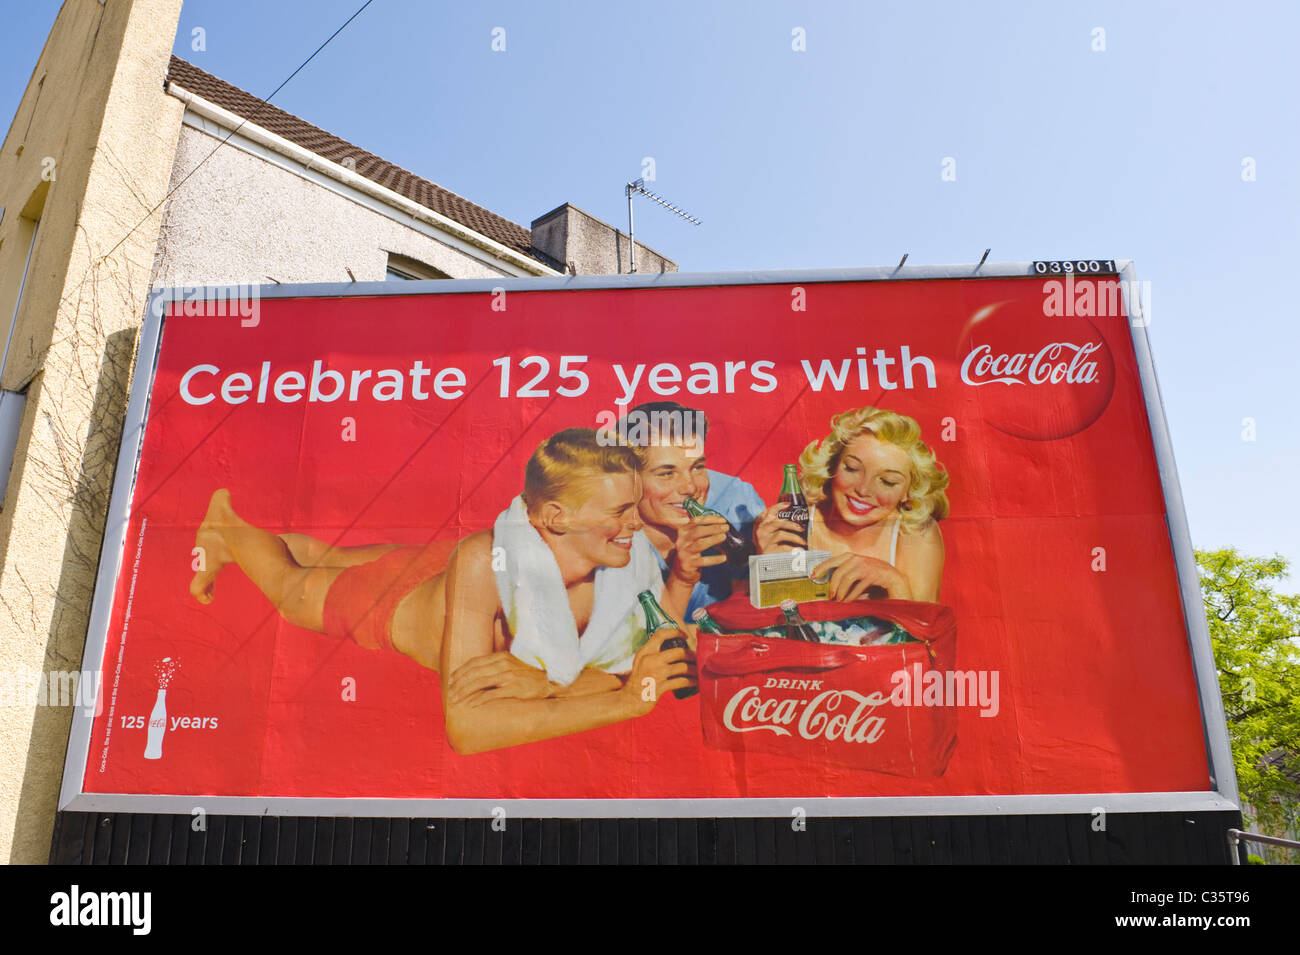 Advertising billboard on JCDecaux site 48 sheet poster advert celebrating 125 years of COCA COLA - Stock Image